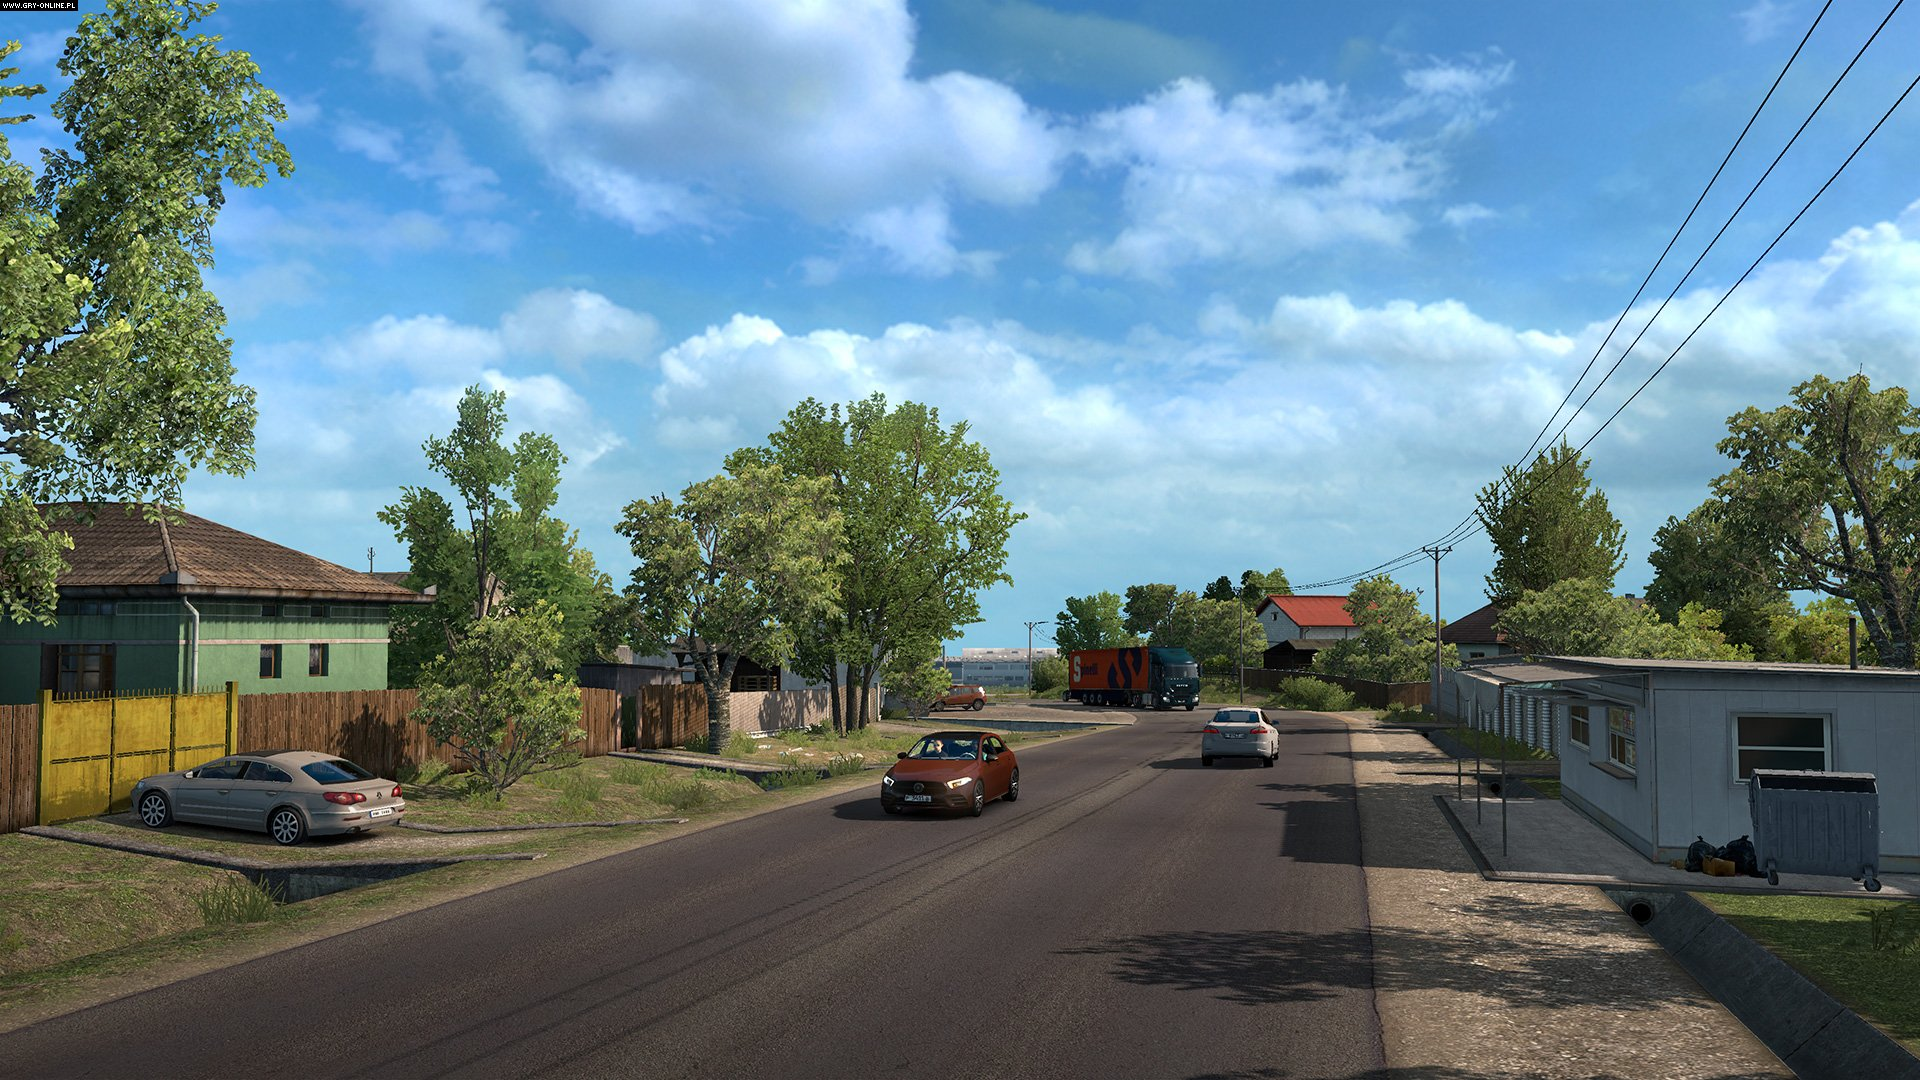 Euro Truck Simulator 2: Road to the Black Sea PC Games Image 7/15, SCS Software